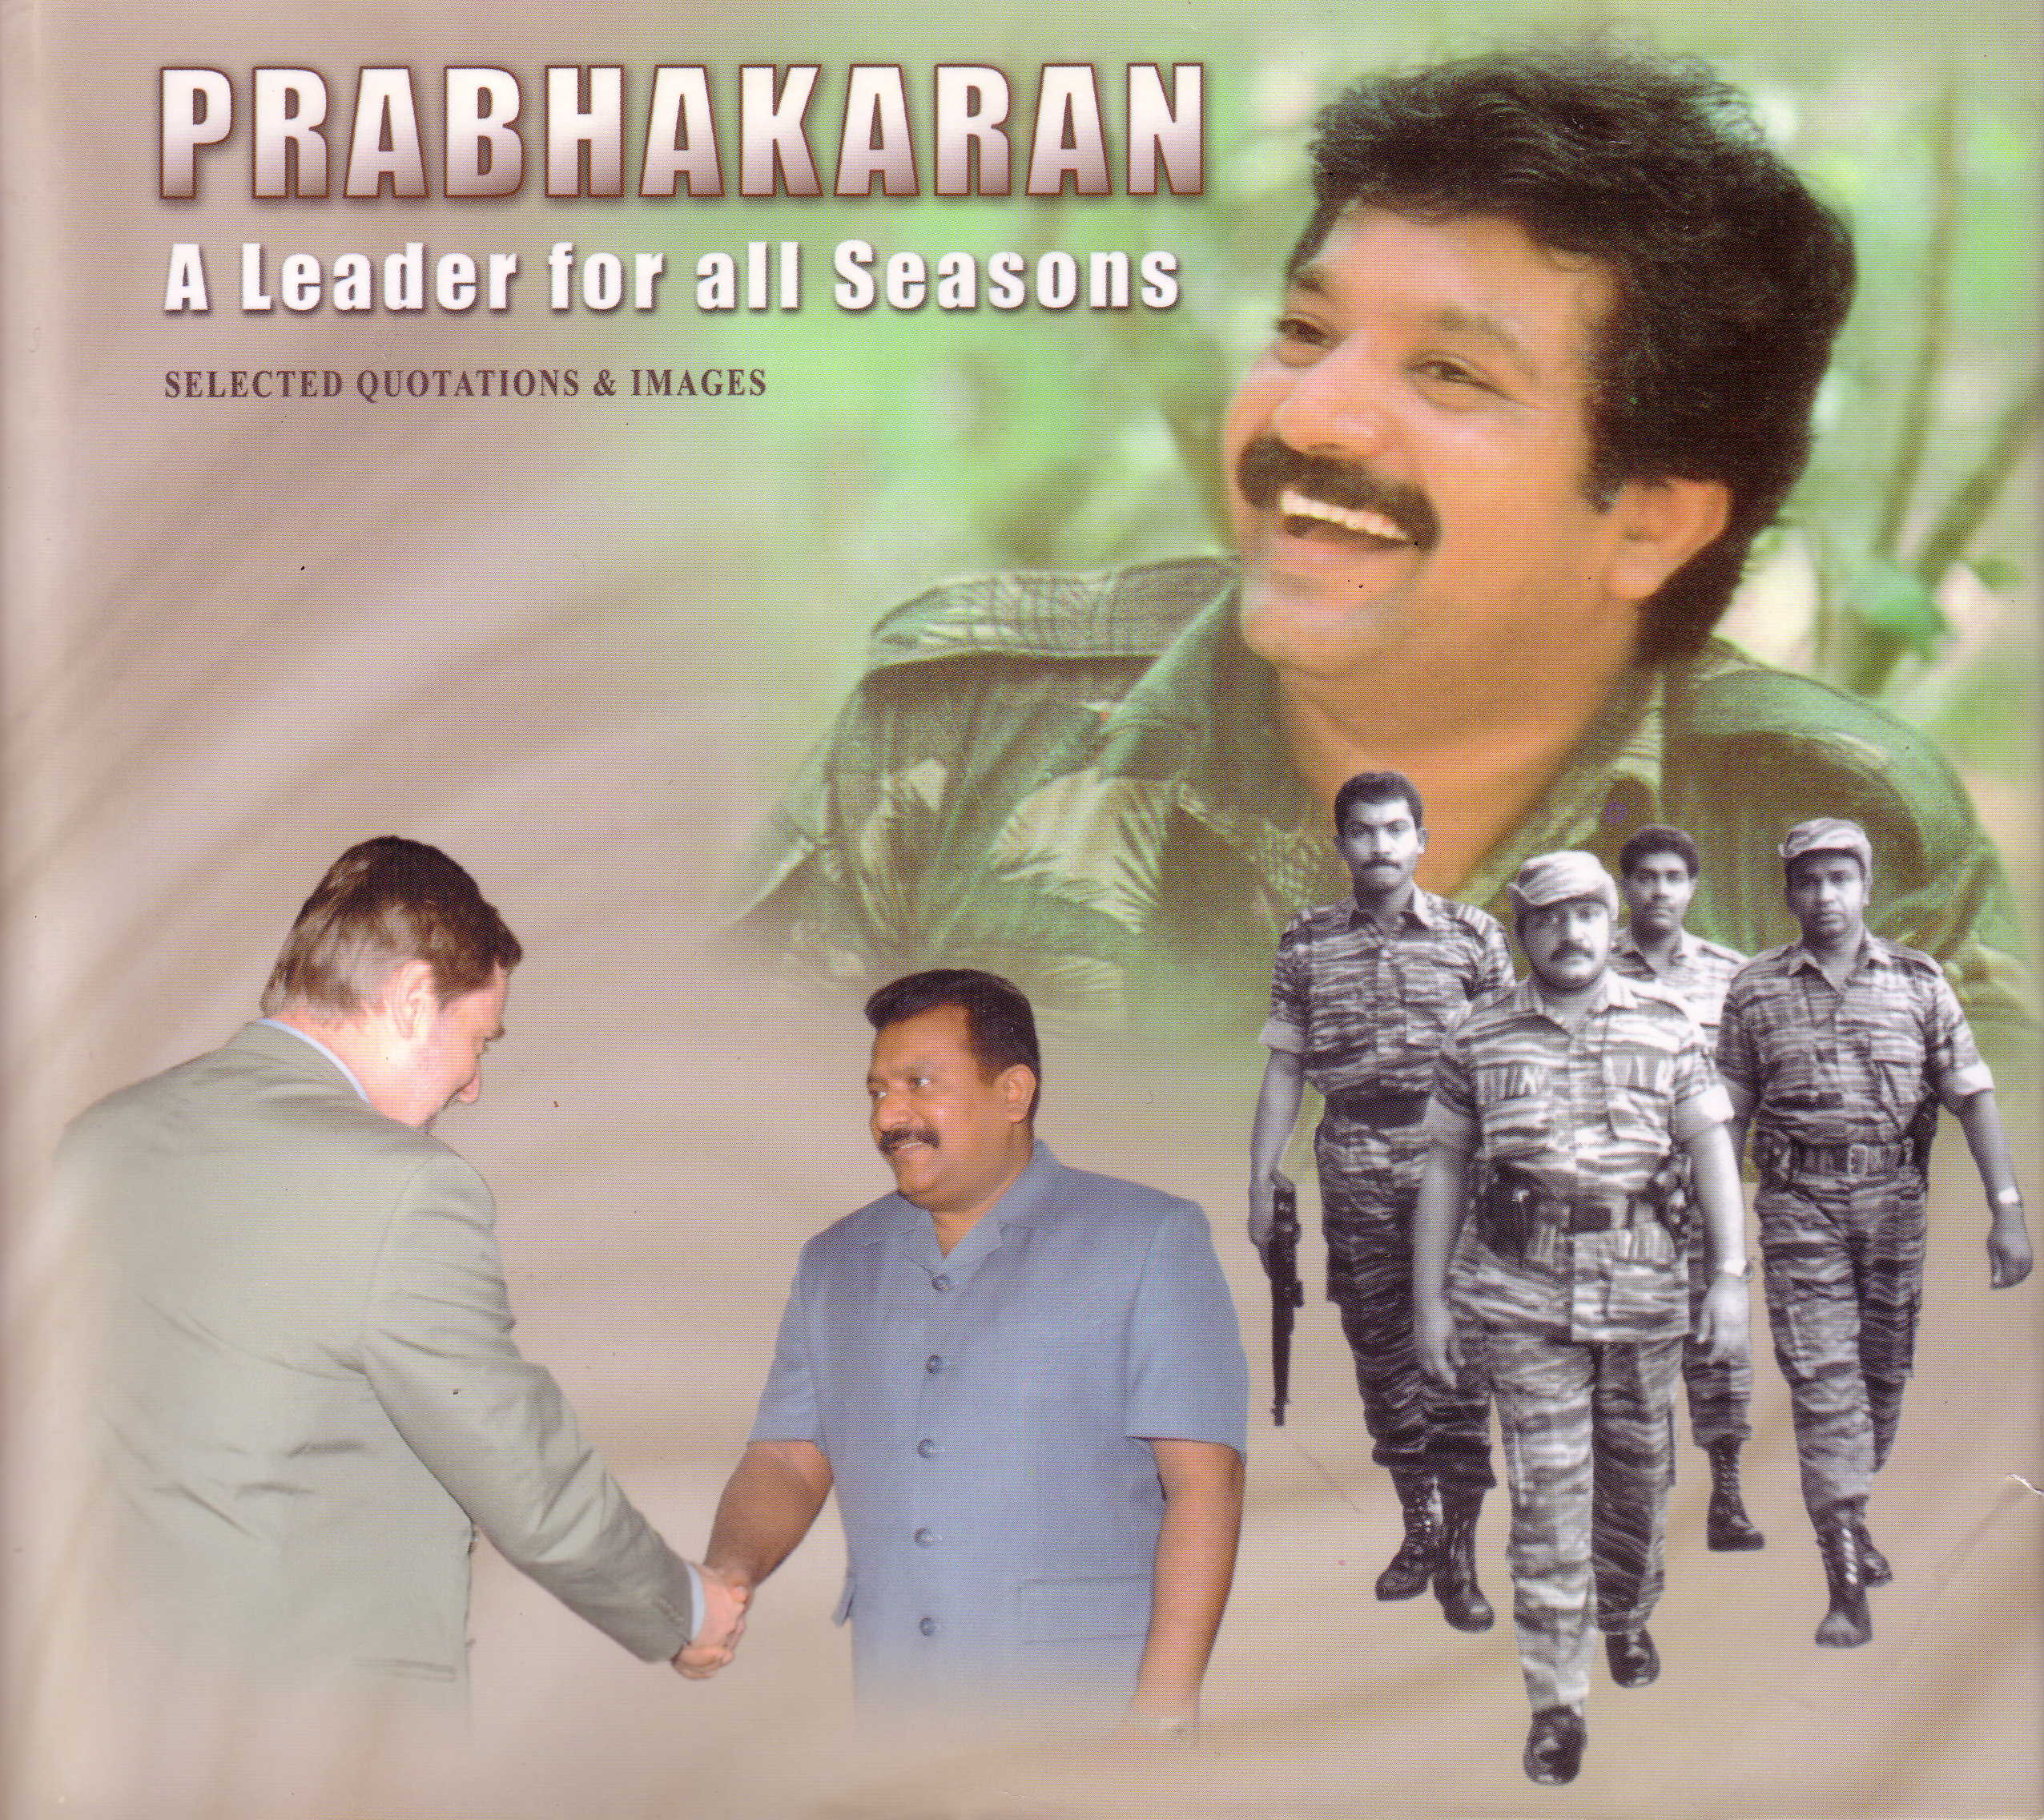 Prabhakaran A Leader (2004 book cover)